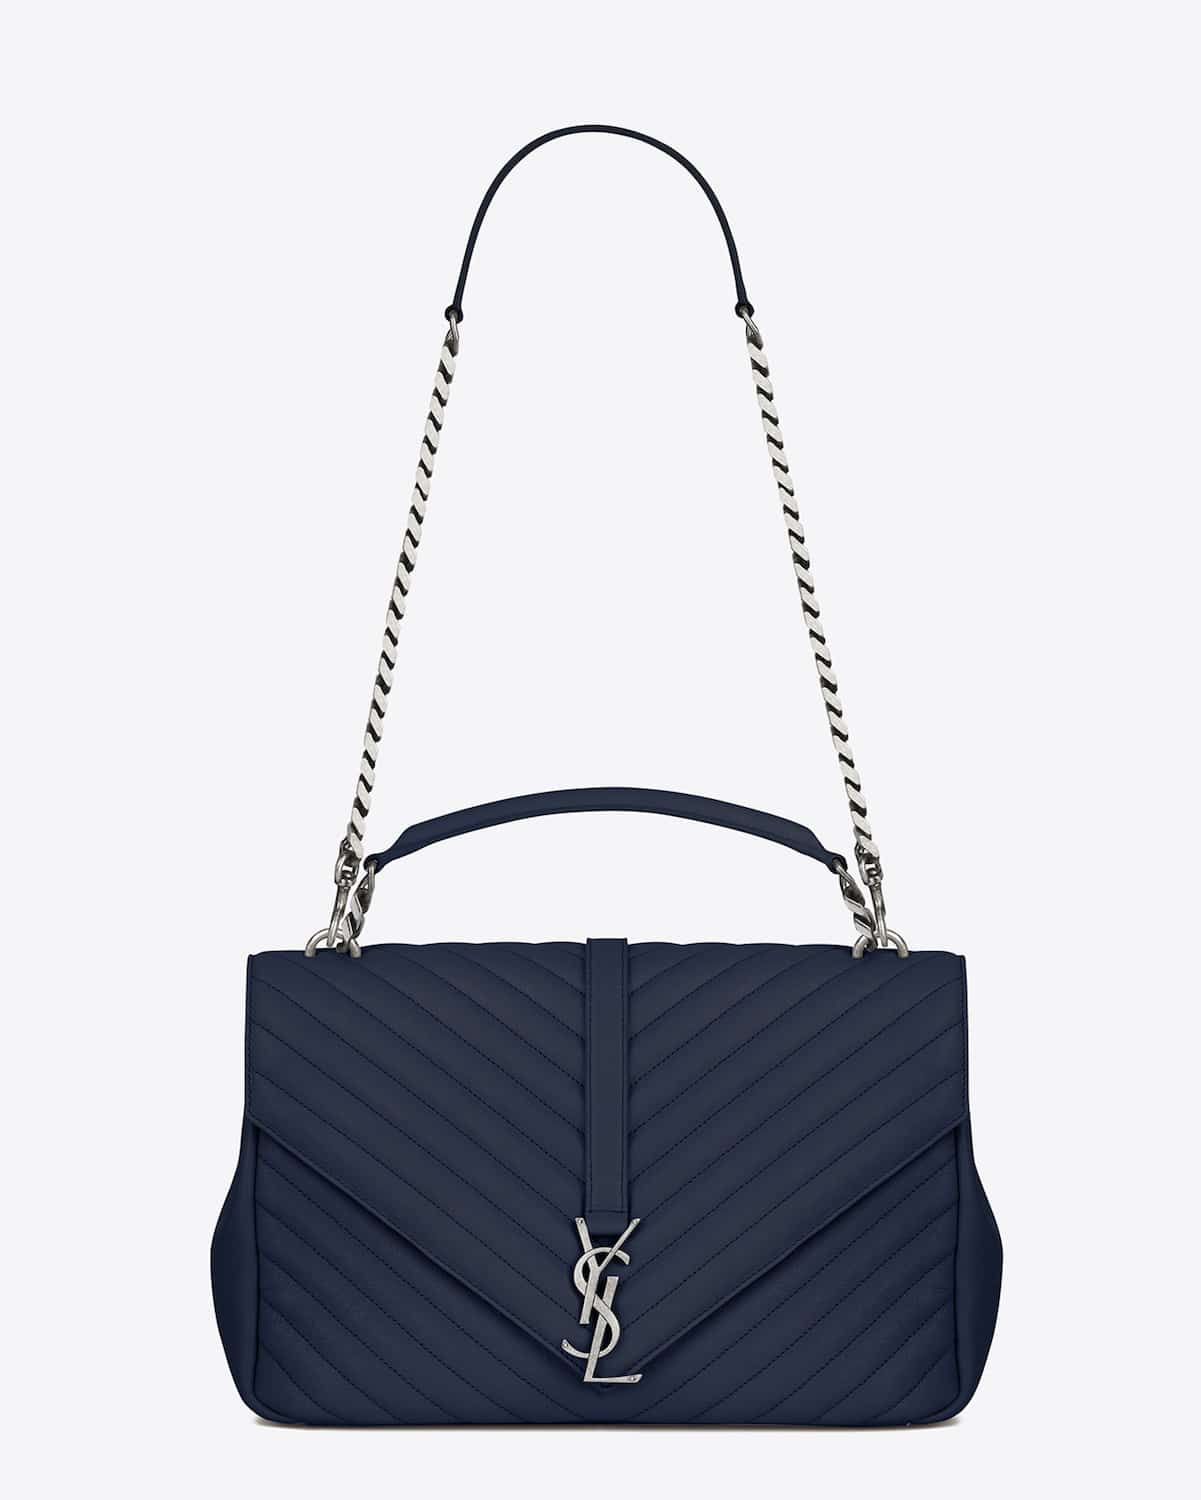 Monogram Saint Laurent Blogger Bag In Sky Blue Leather